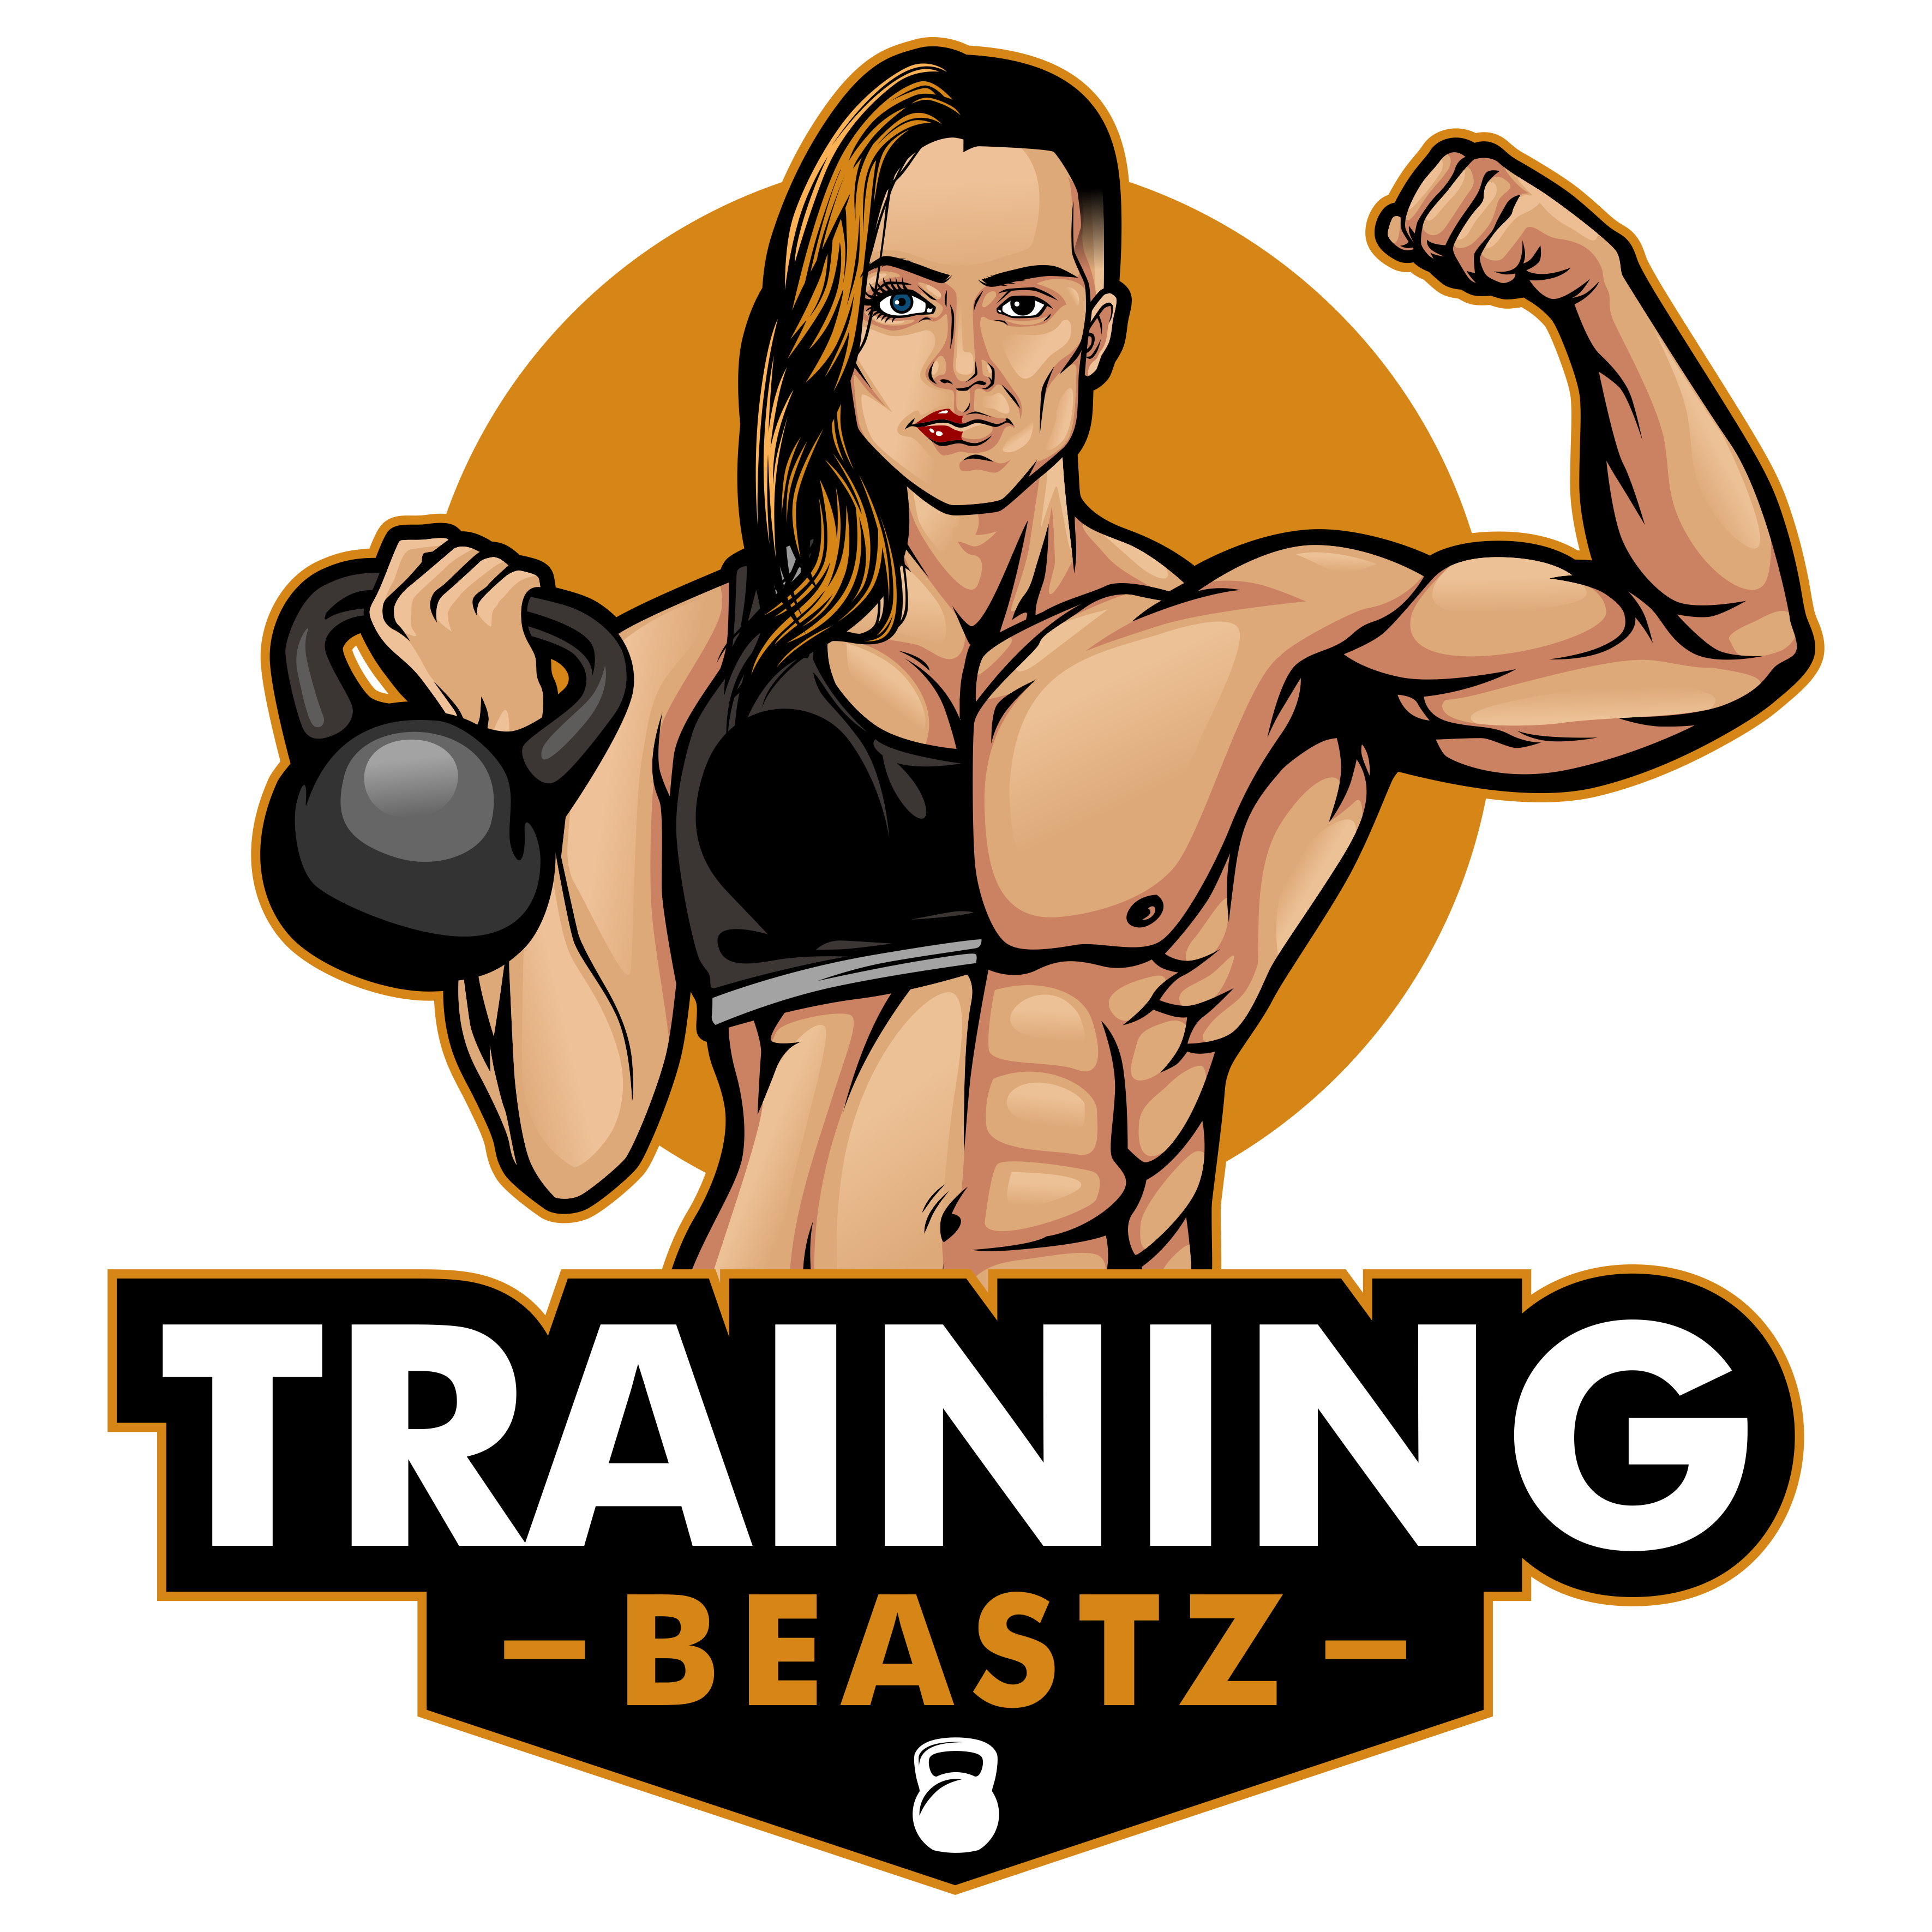 Two faced/body men woman badass sport logo